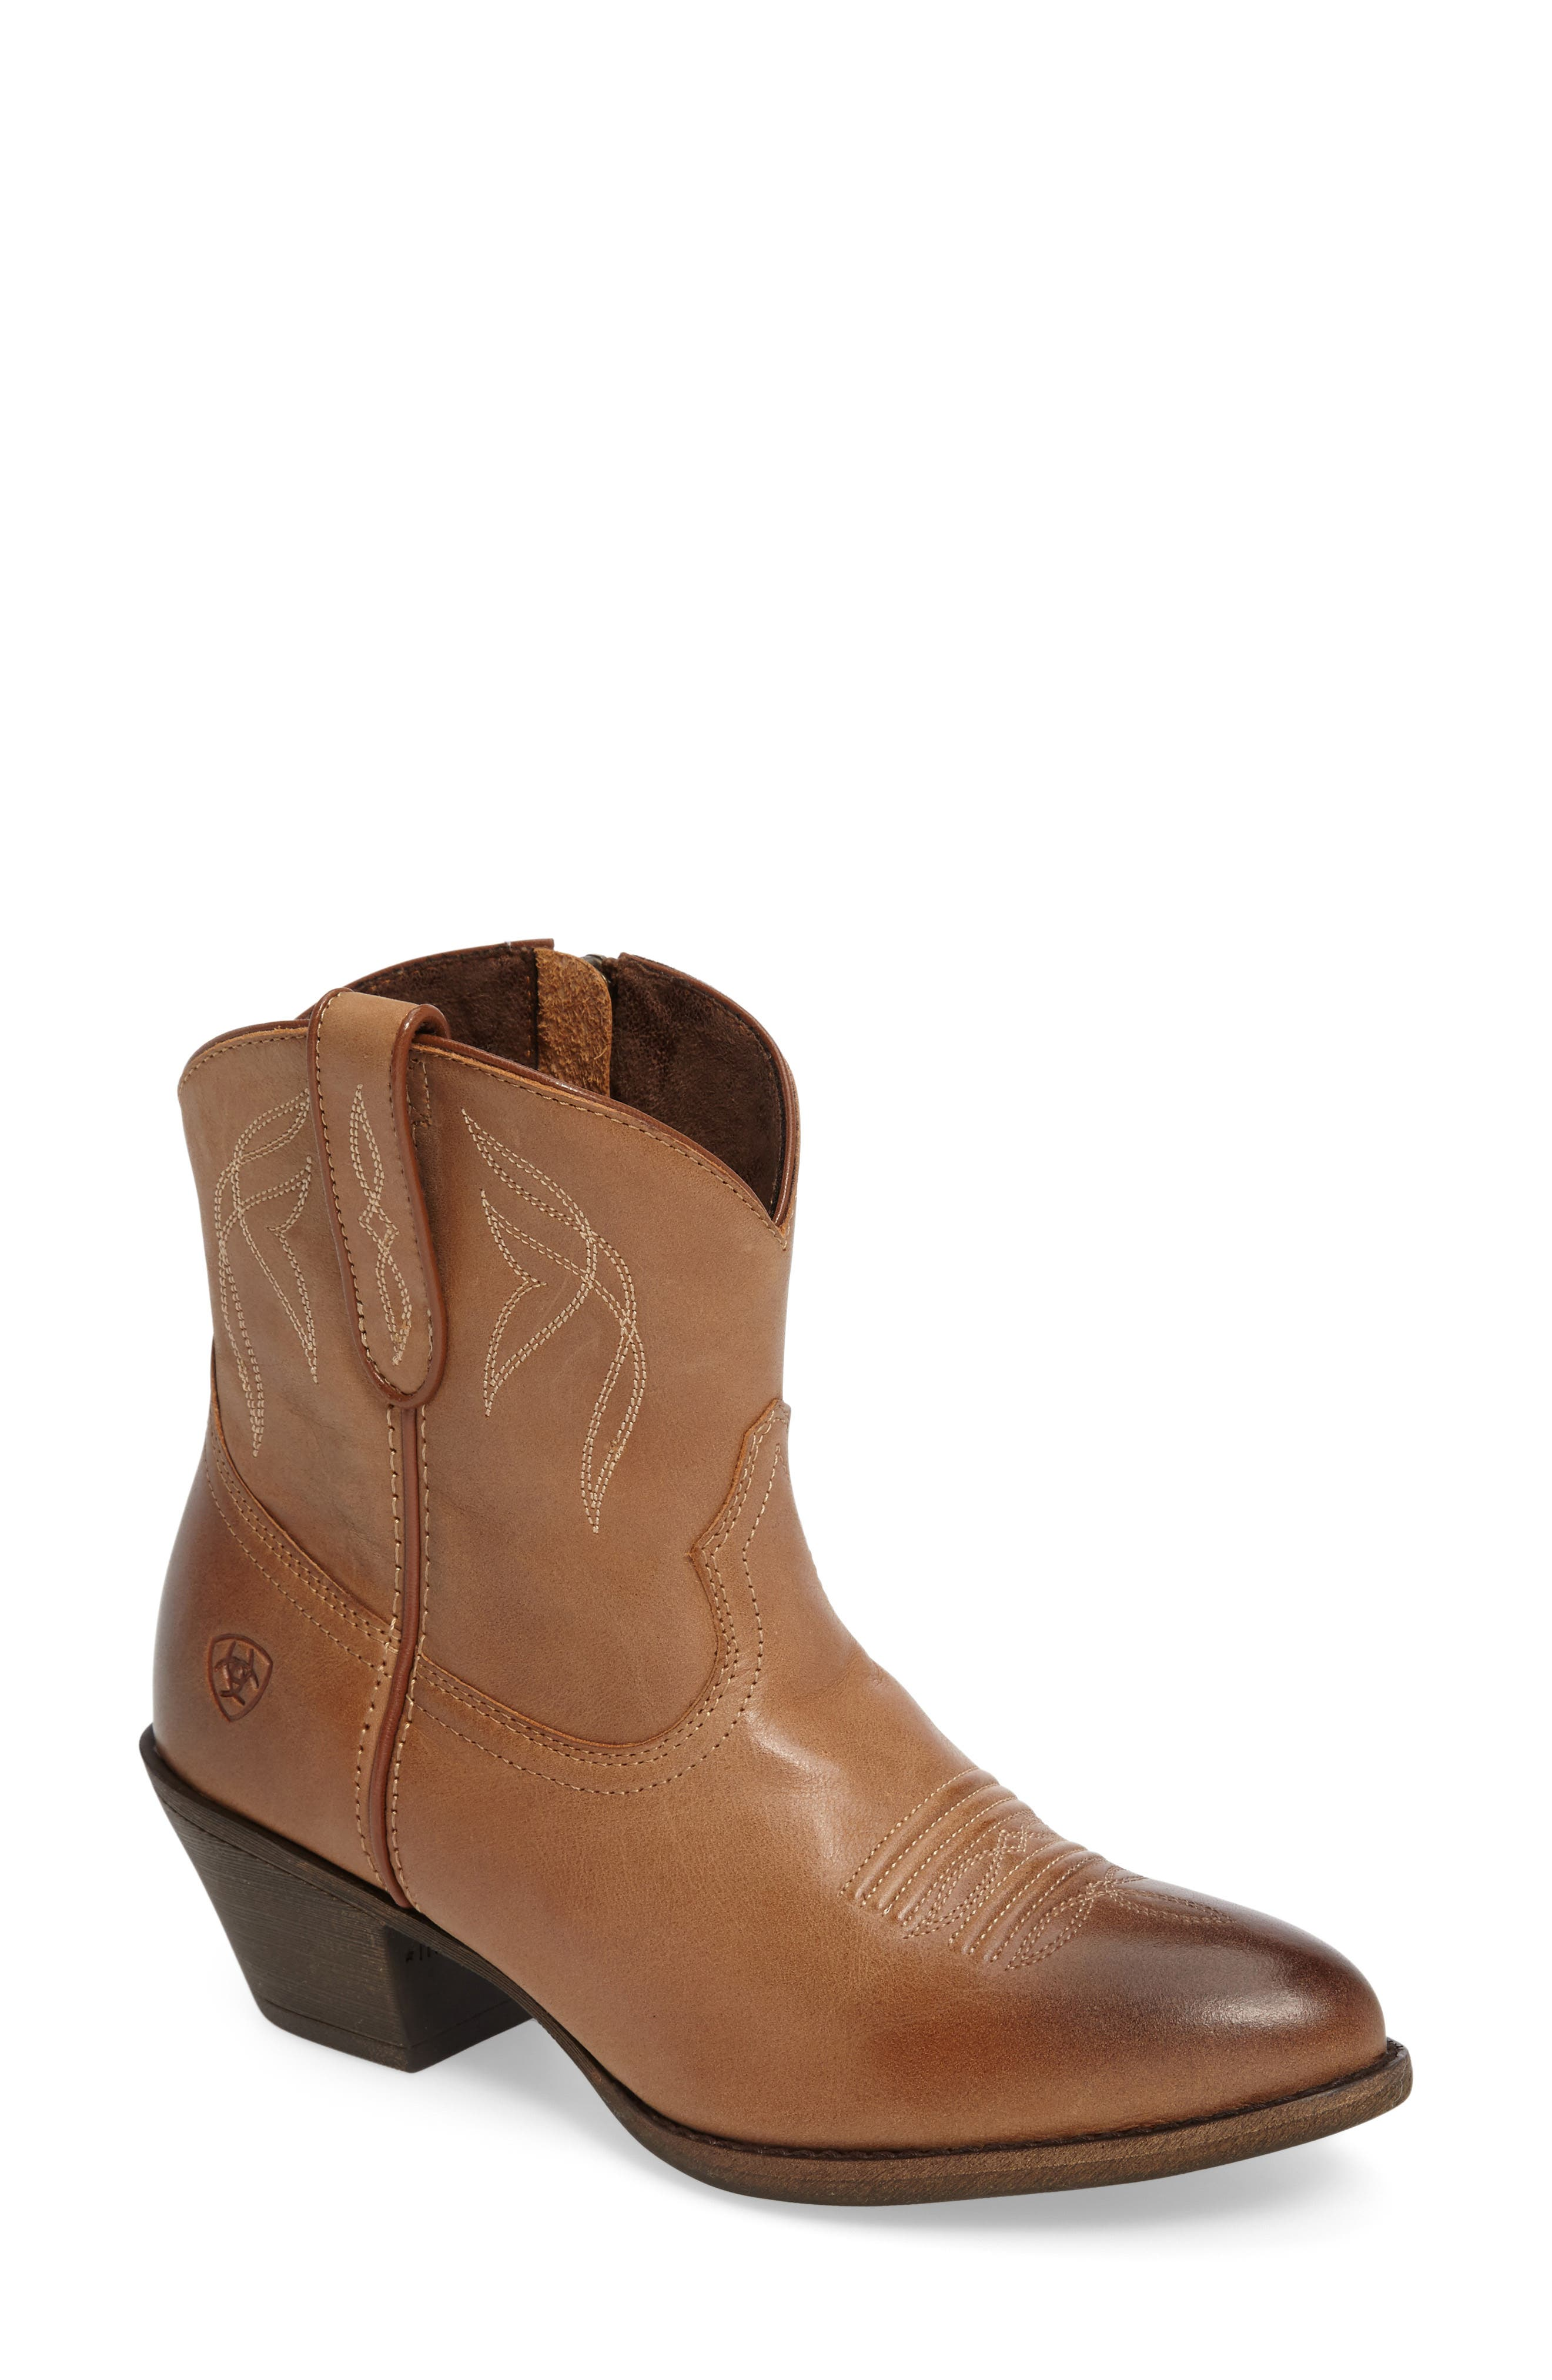 Alternate Image 1 Selected - Ariat Darlin Short Western Boot (Women)